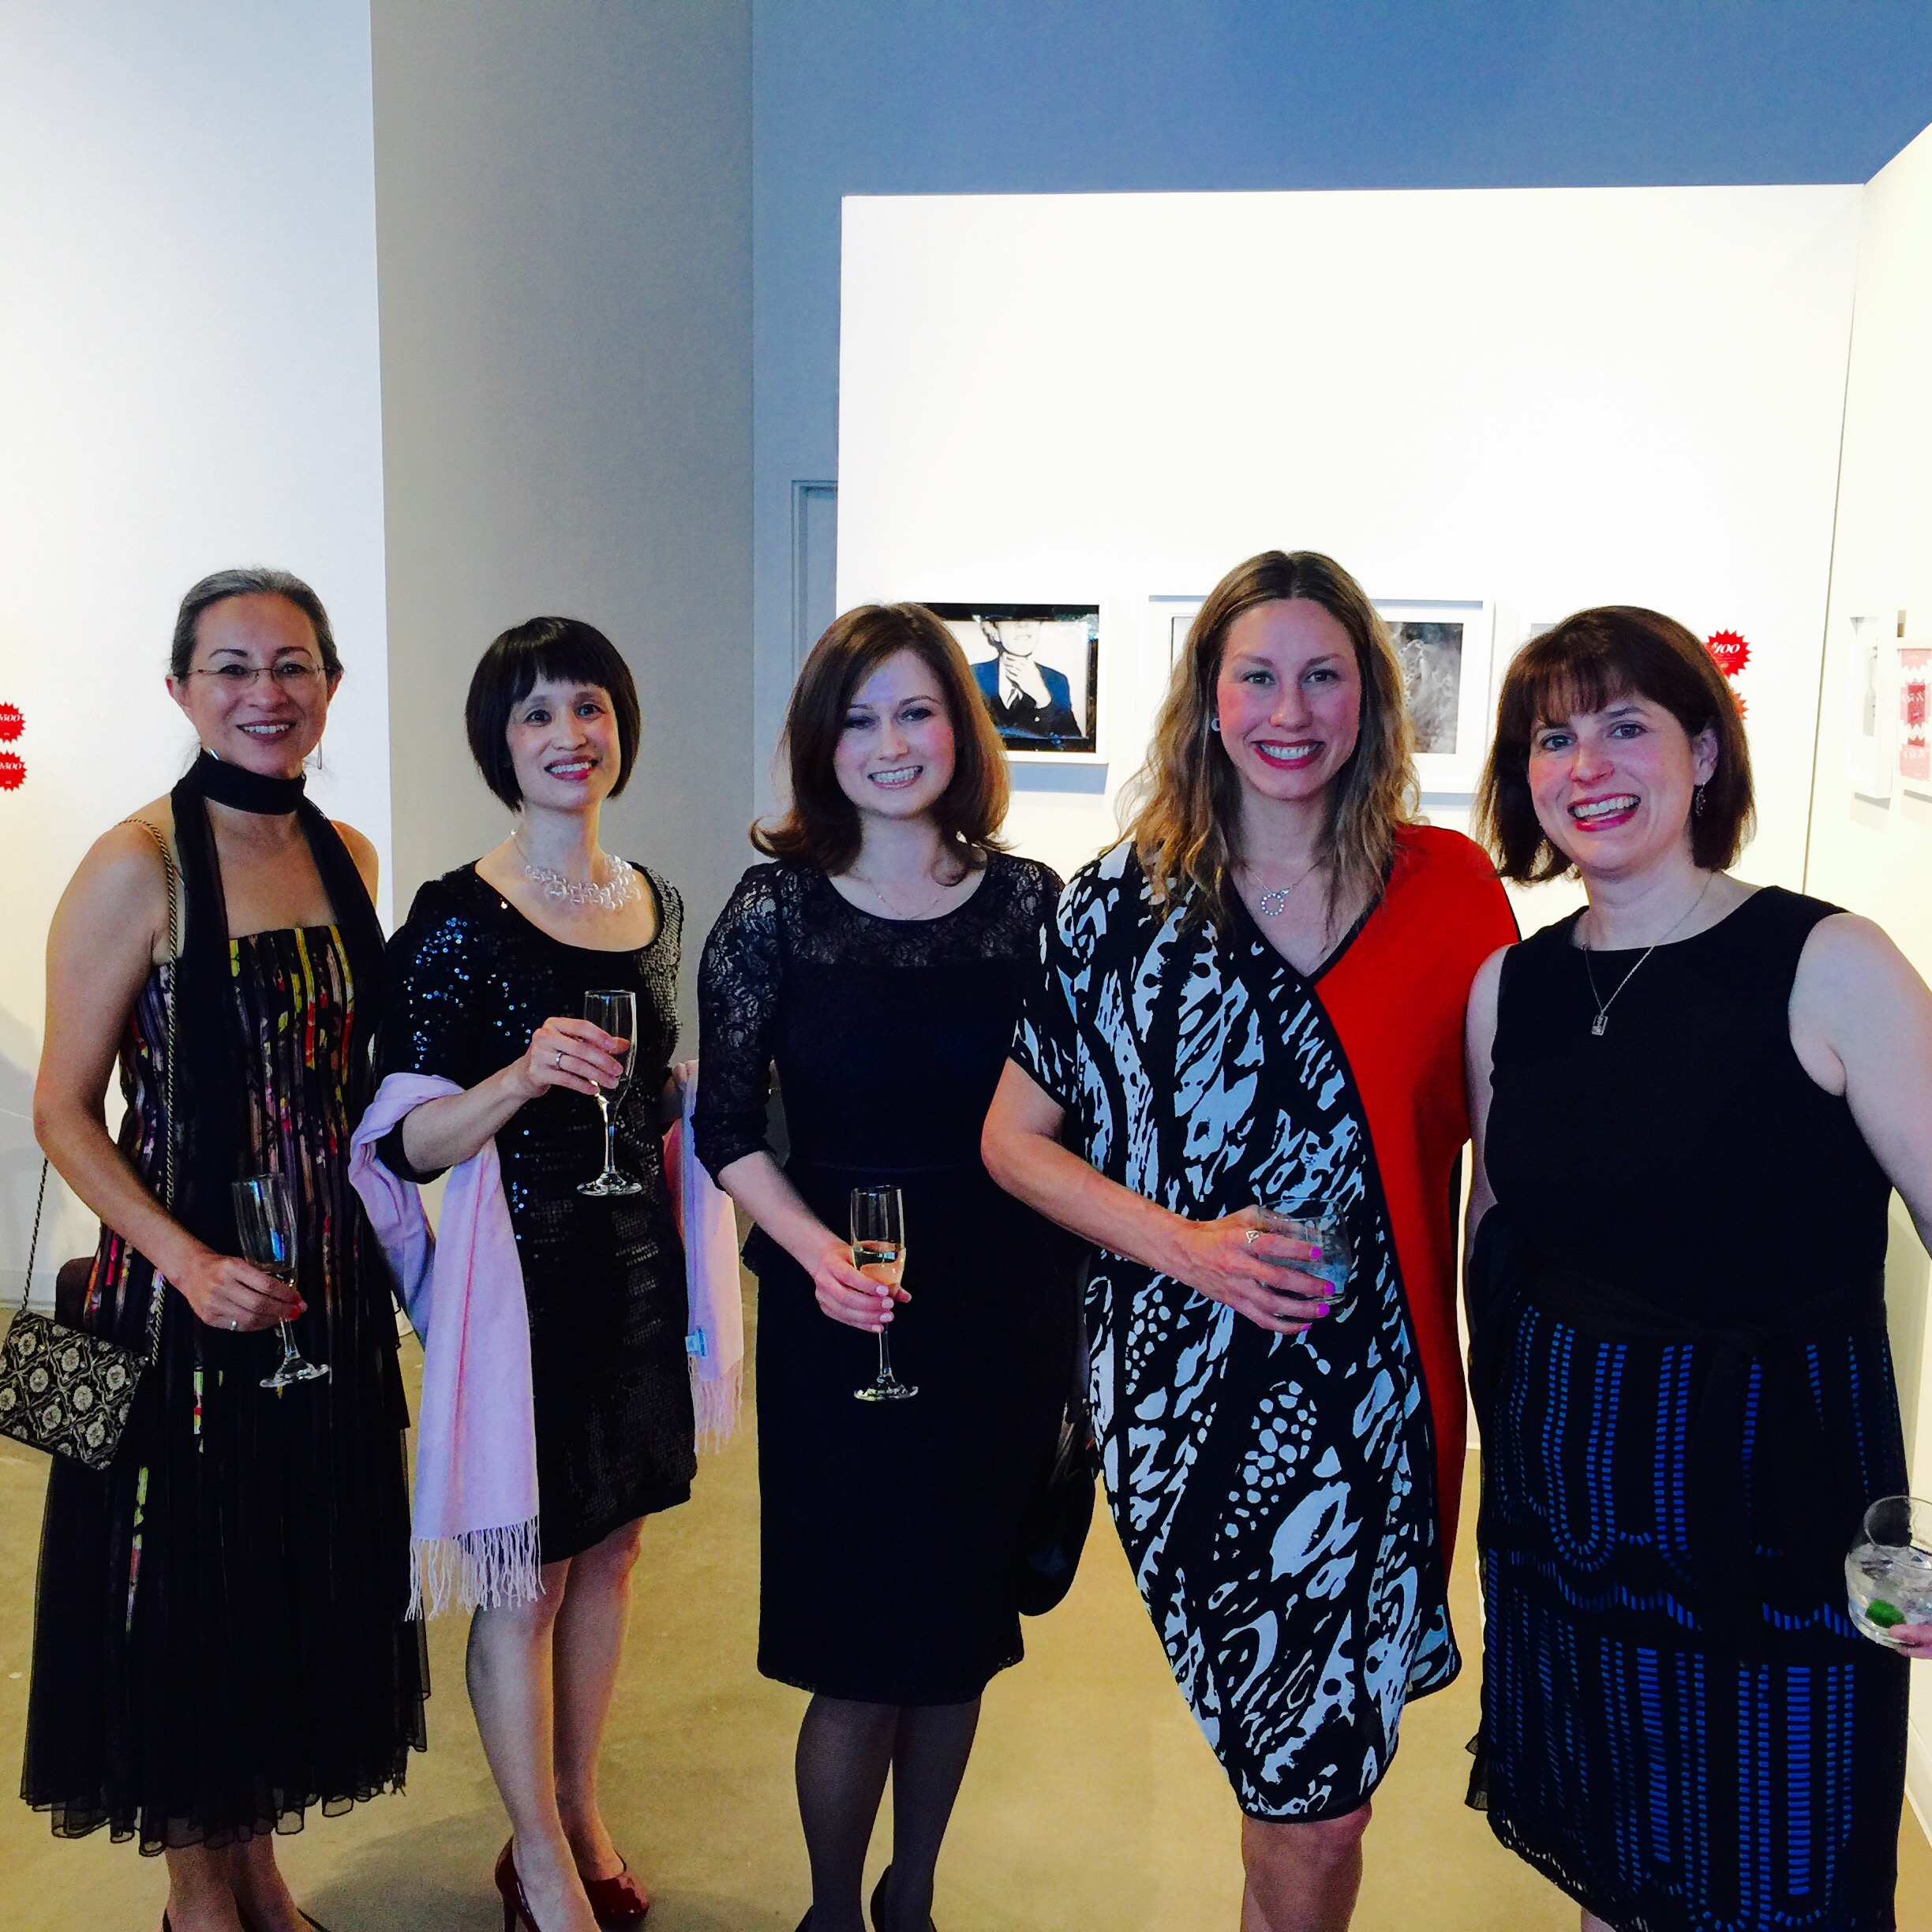 Alumni, friends and staff of the College of Arts & Media: Dolores Arce-Kaptain, Jing Yeng Lim, Elena Reznikova ('10), Jessica Brack (Museum of Outdoor Art in Englewood) and CU Denver Senior Director of Development Noelle DeLage